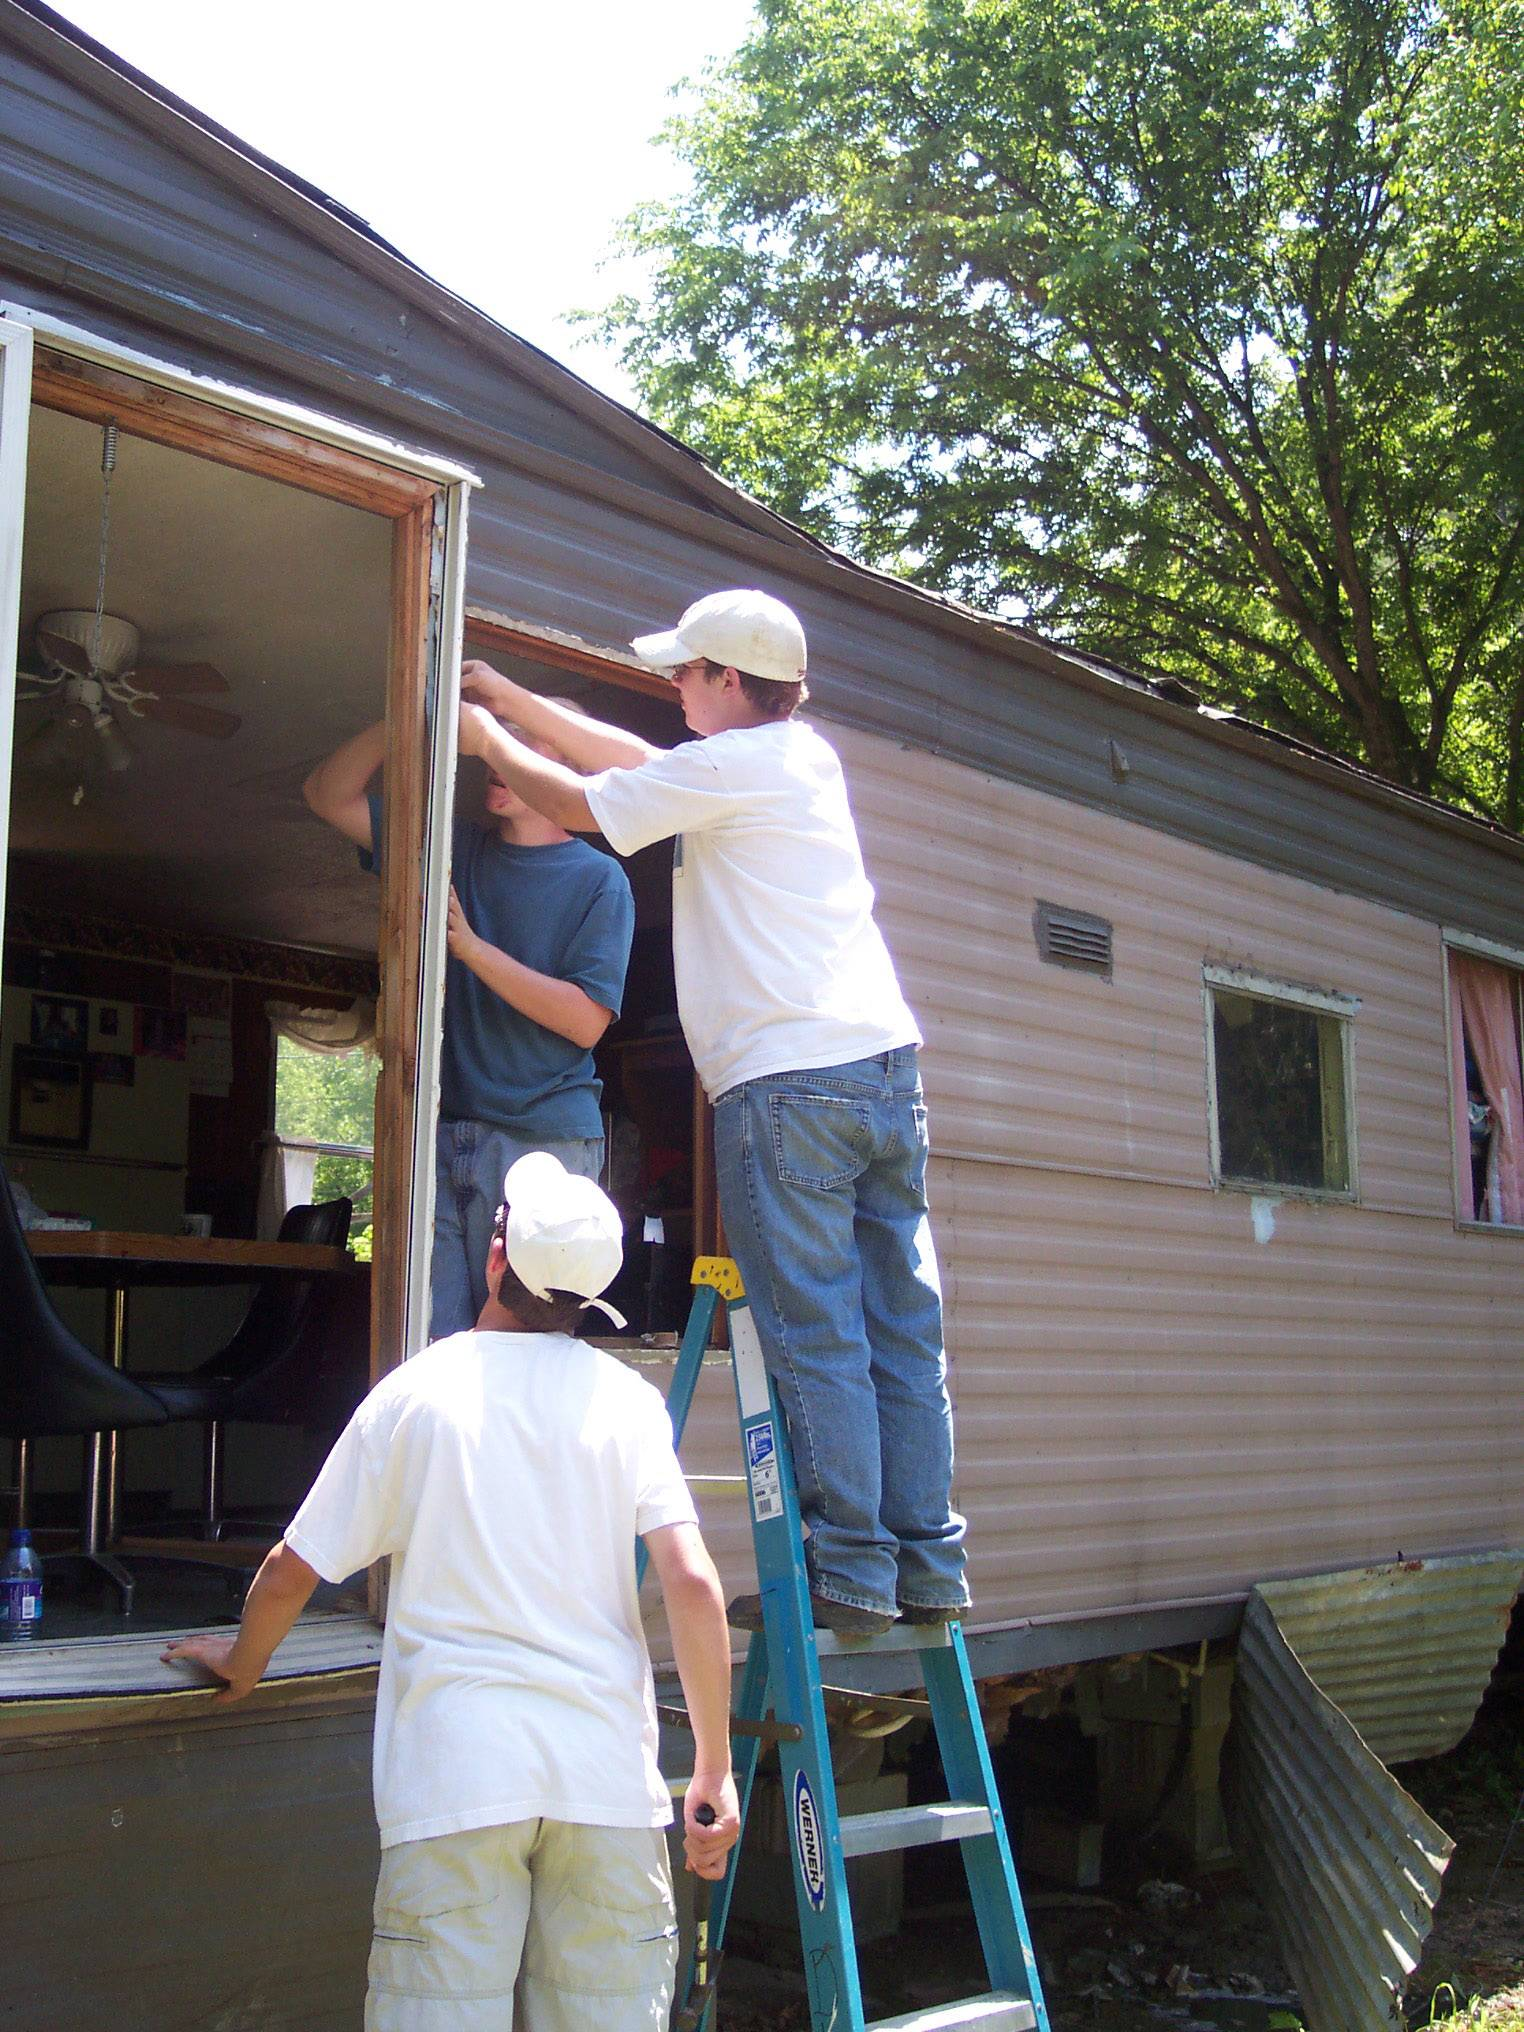 Peter Van Nortwick and Austin Schuetz replace a door in a trailer home last June in Prestonsburg, Kentucky, where high school students from St. Charles Episcopal Church spend a few days each June repairing homes on a mission trip called Mission in the Mountains.